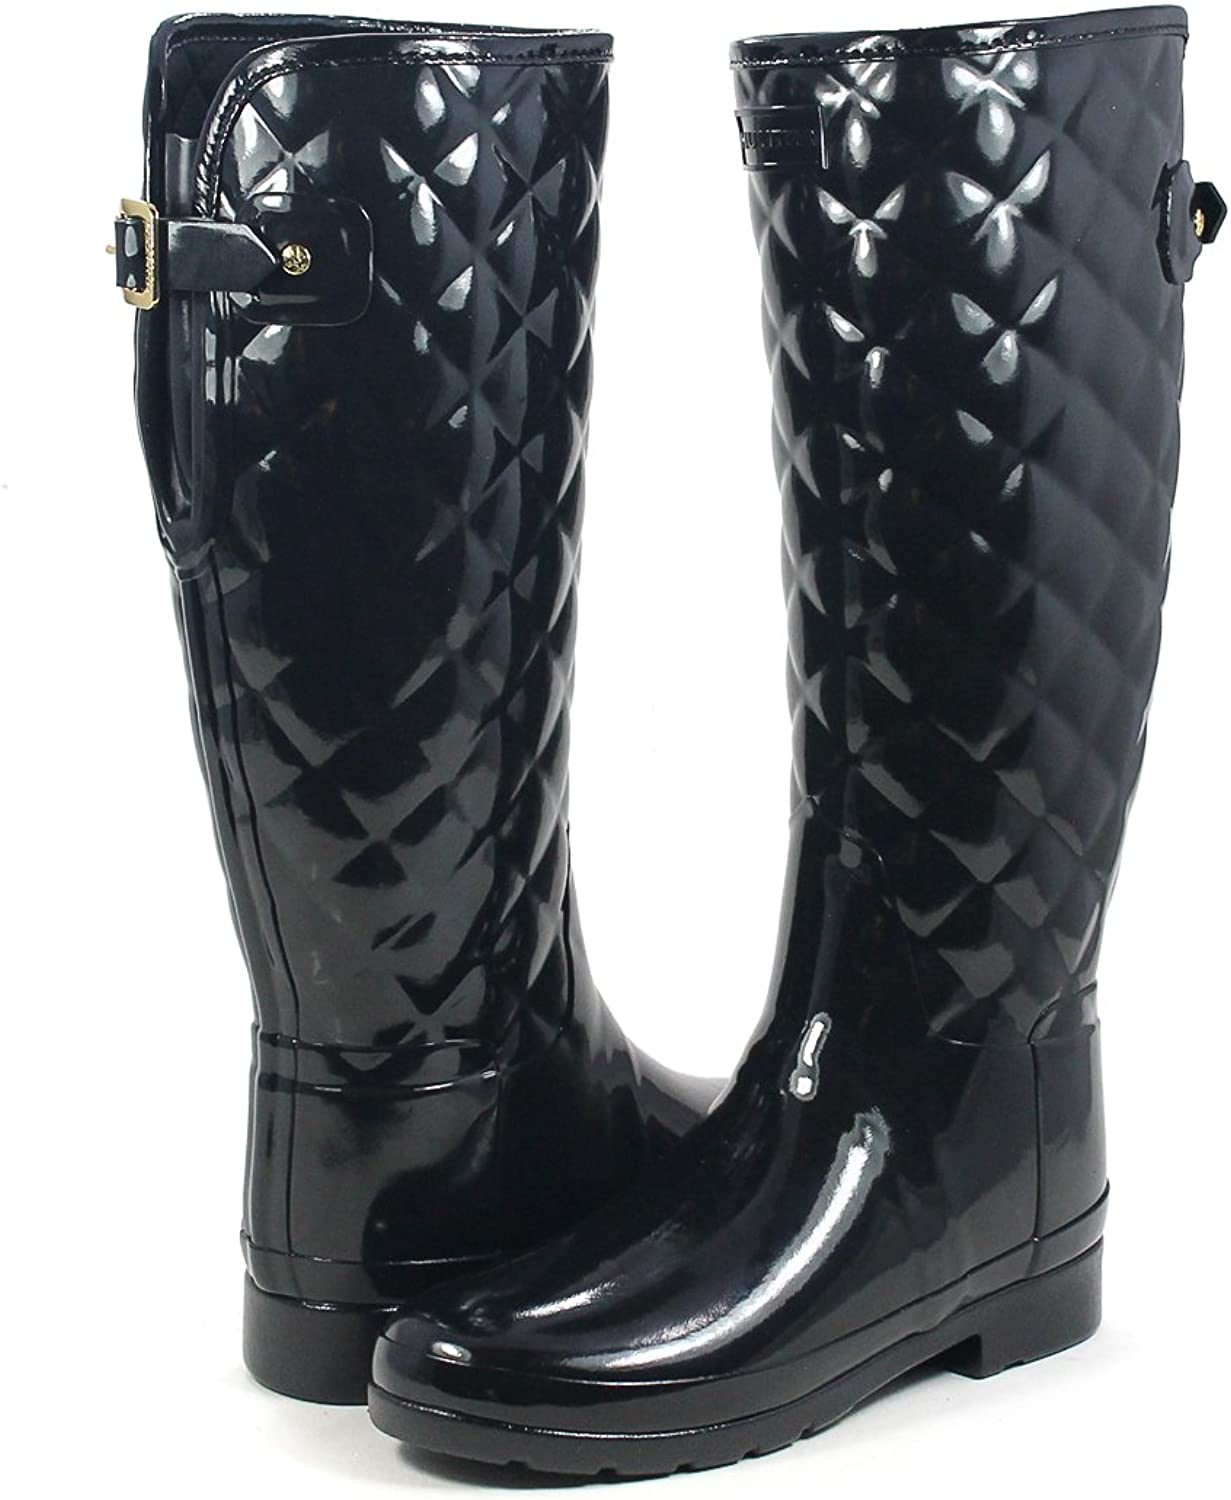 Hunters Boots Women's Refined Quilted Tall Boots